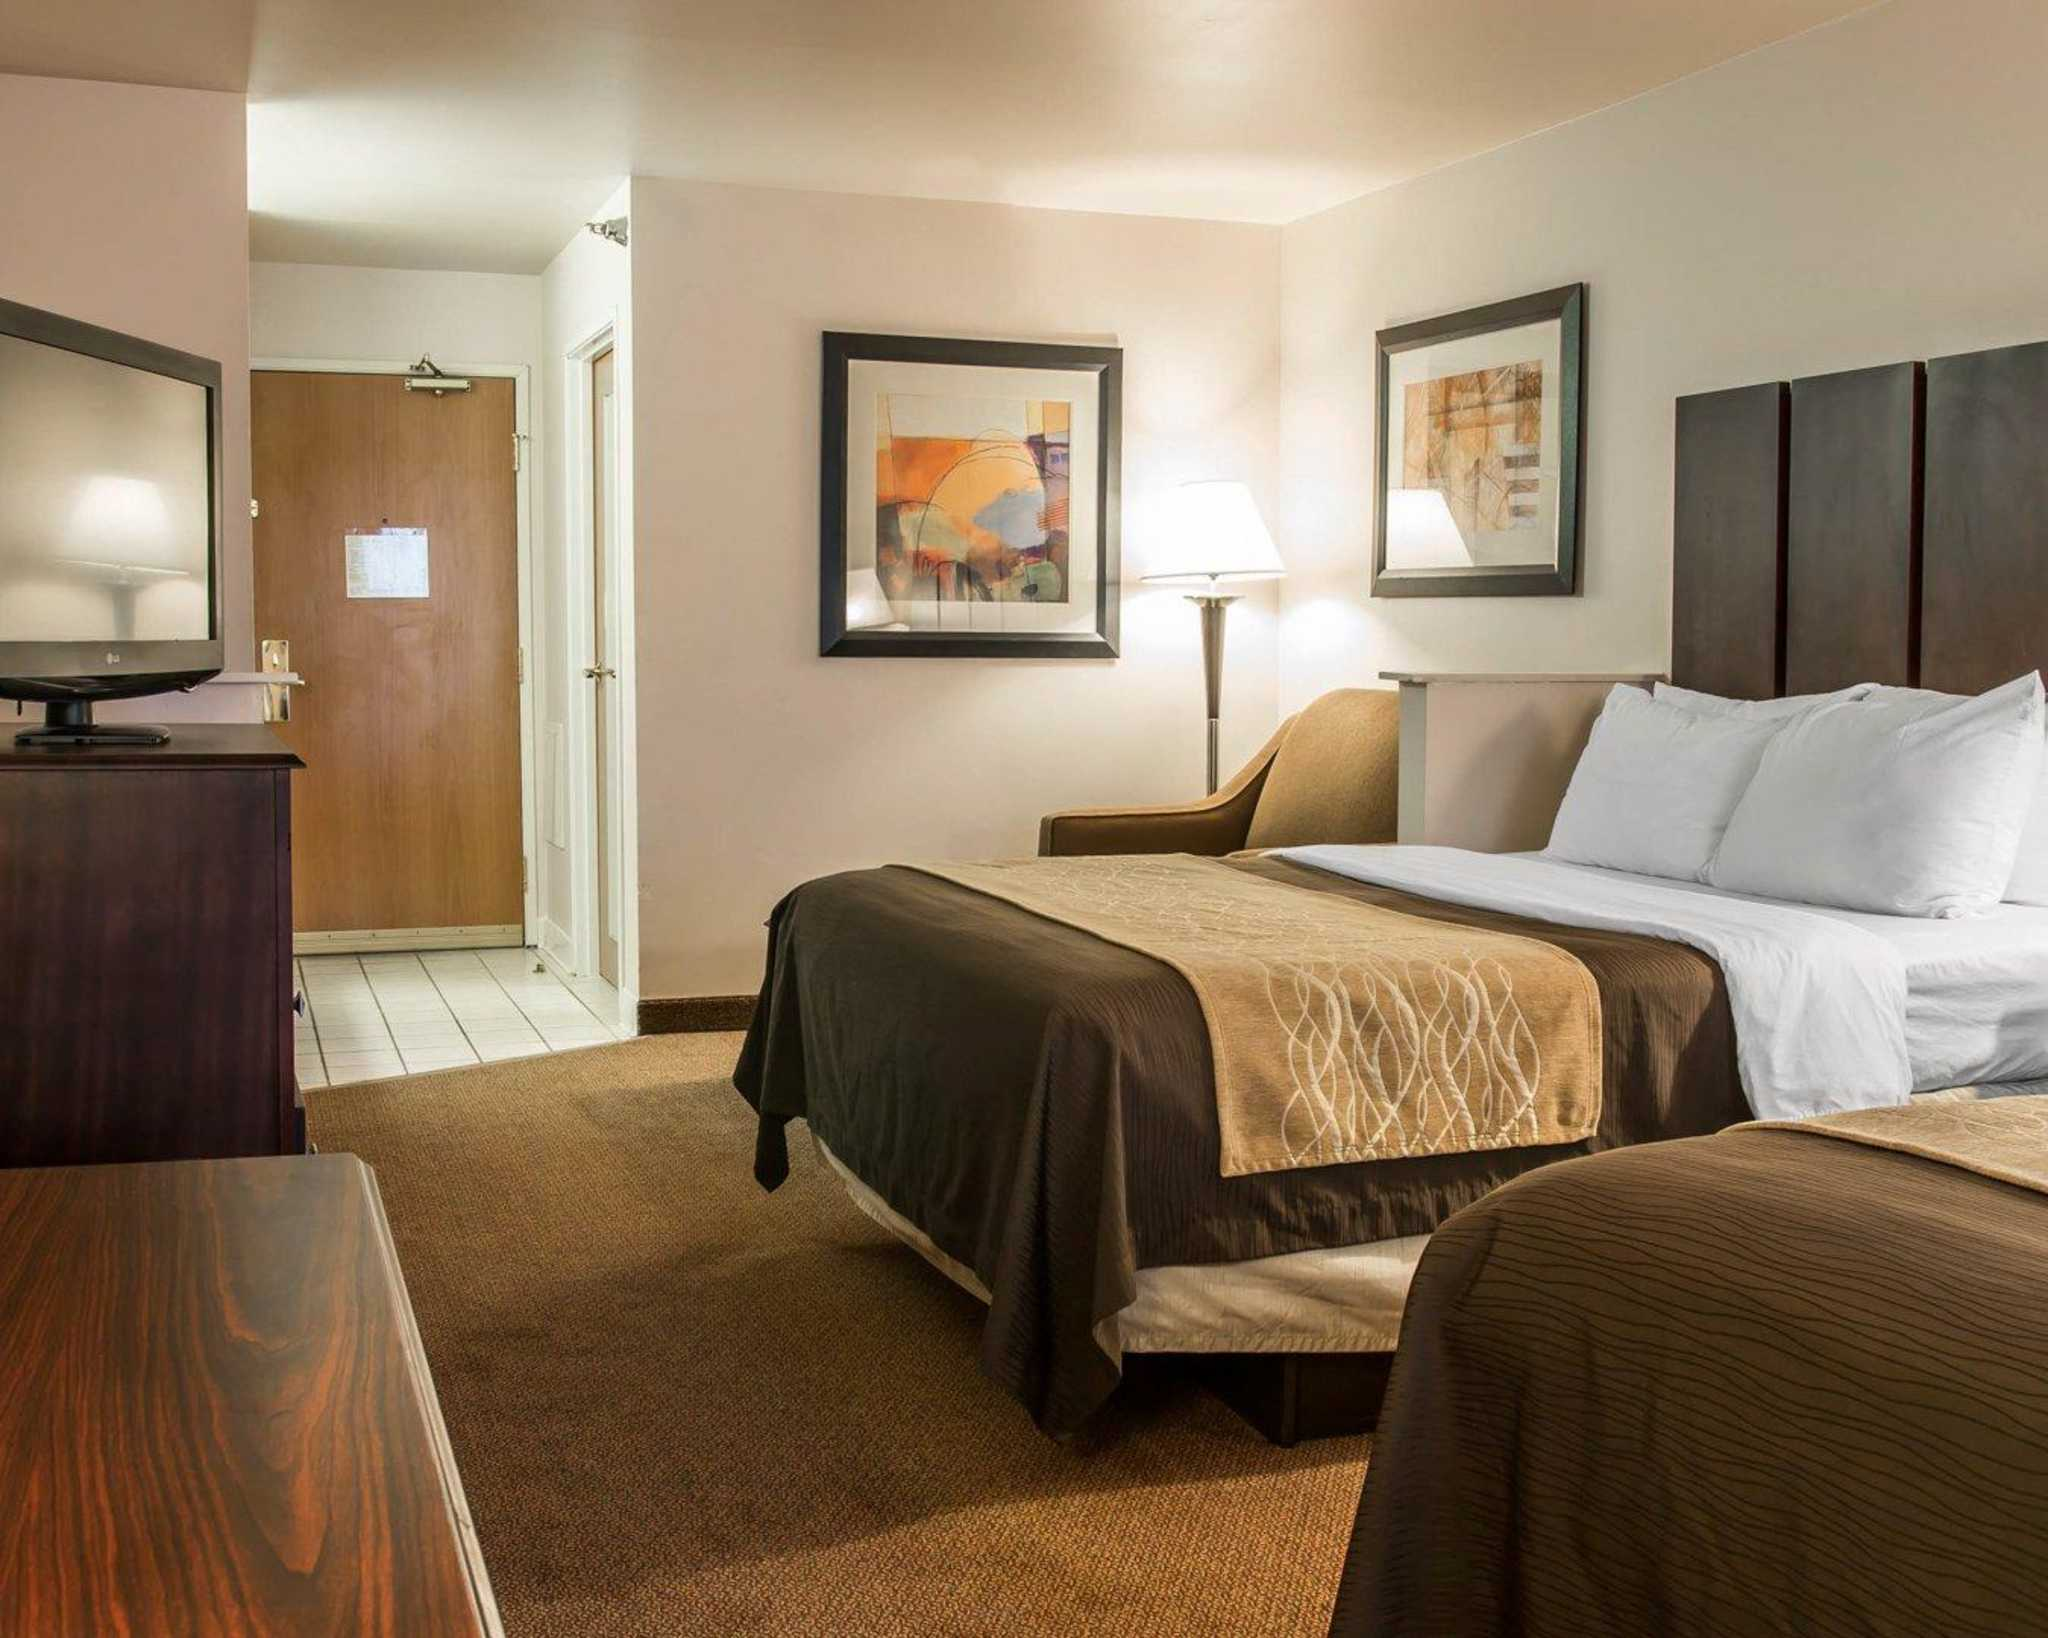 Comfort Inn Amp Suites Coupons Fenton Mi Near Me 8coupons